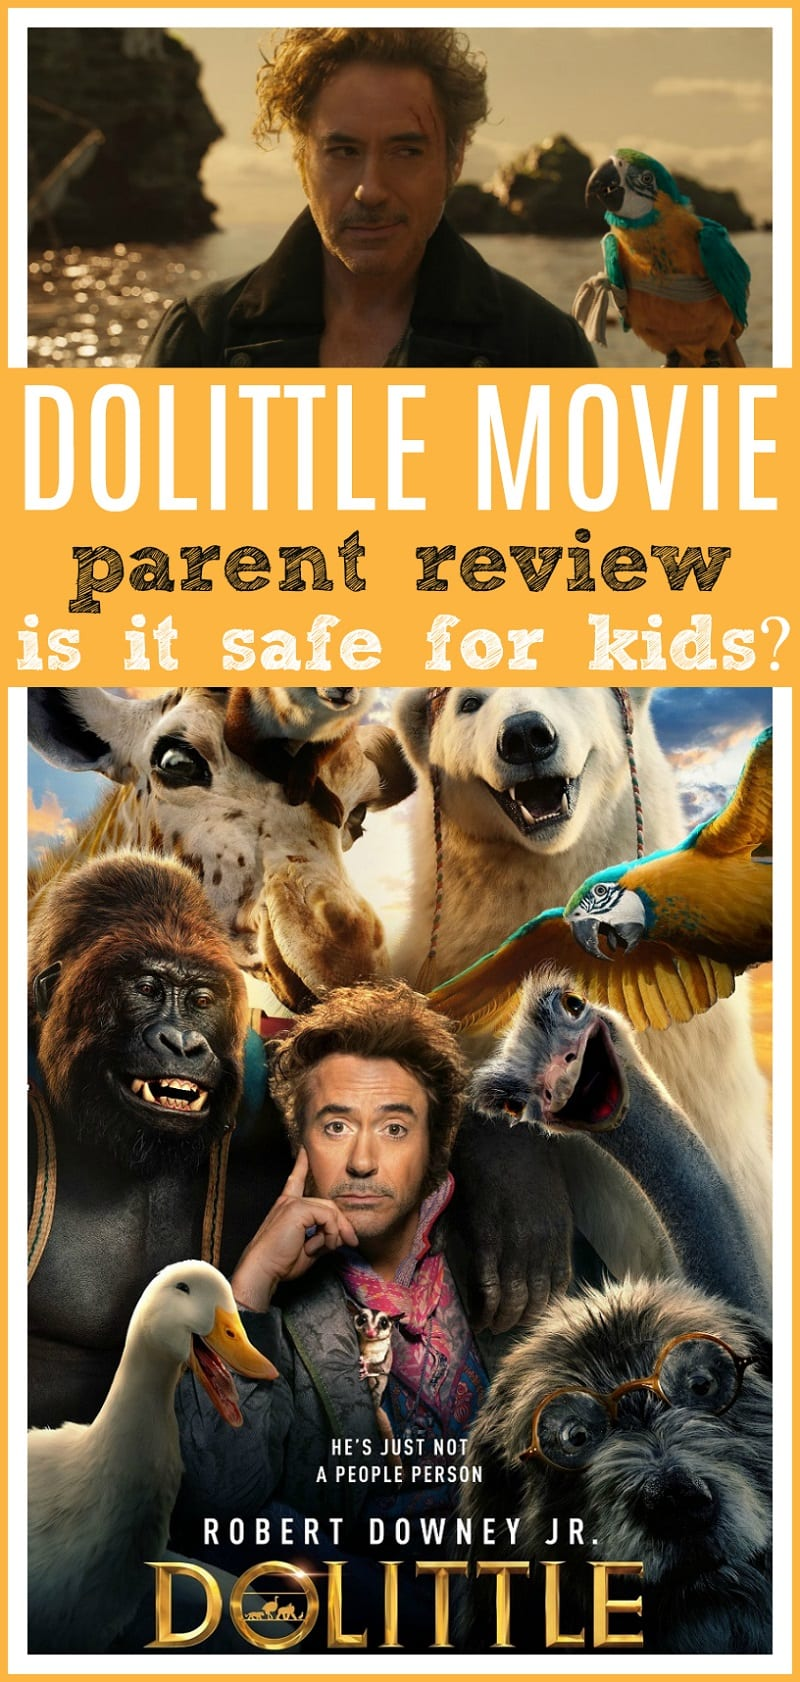 Dolittle parent movie review